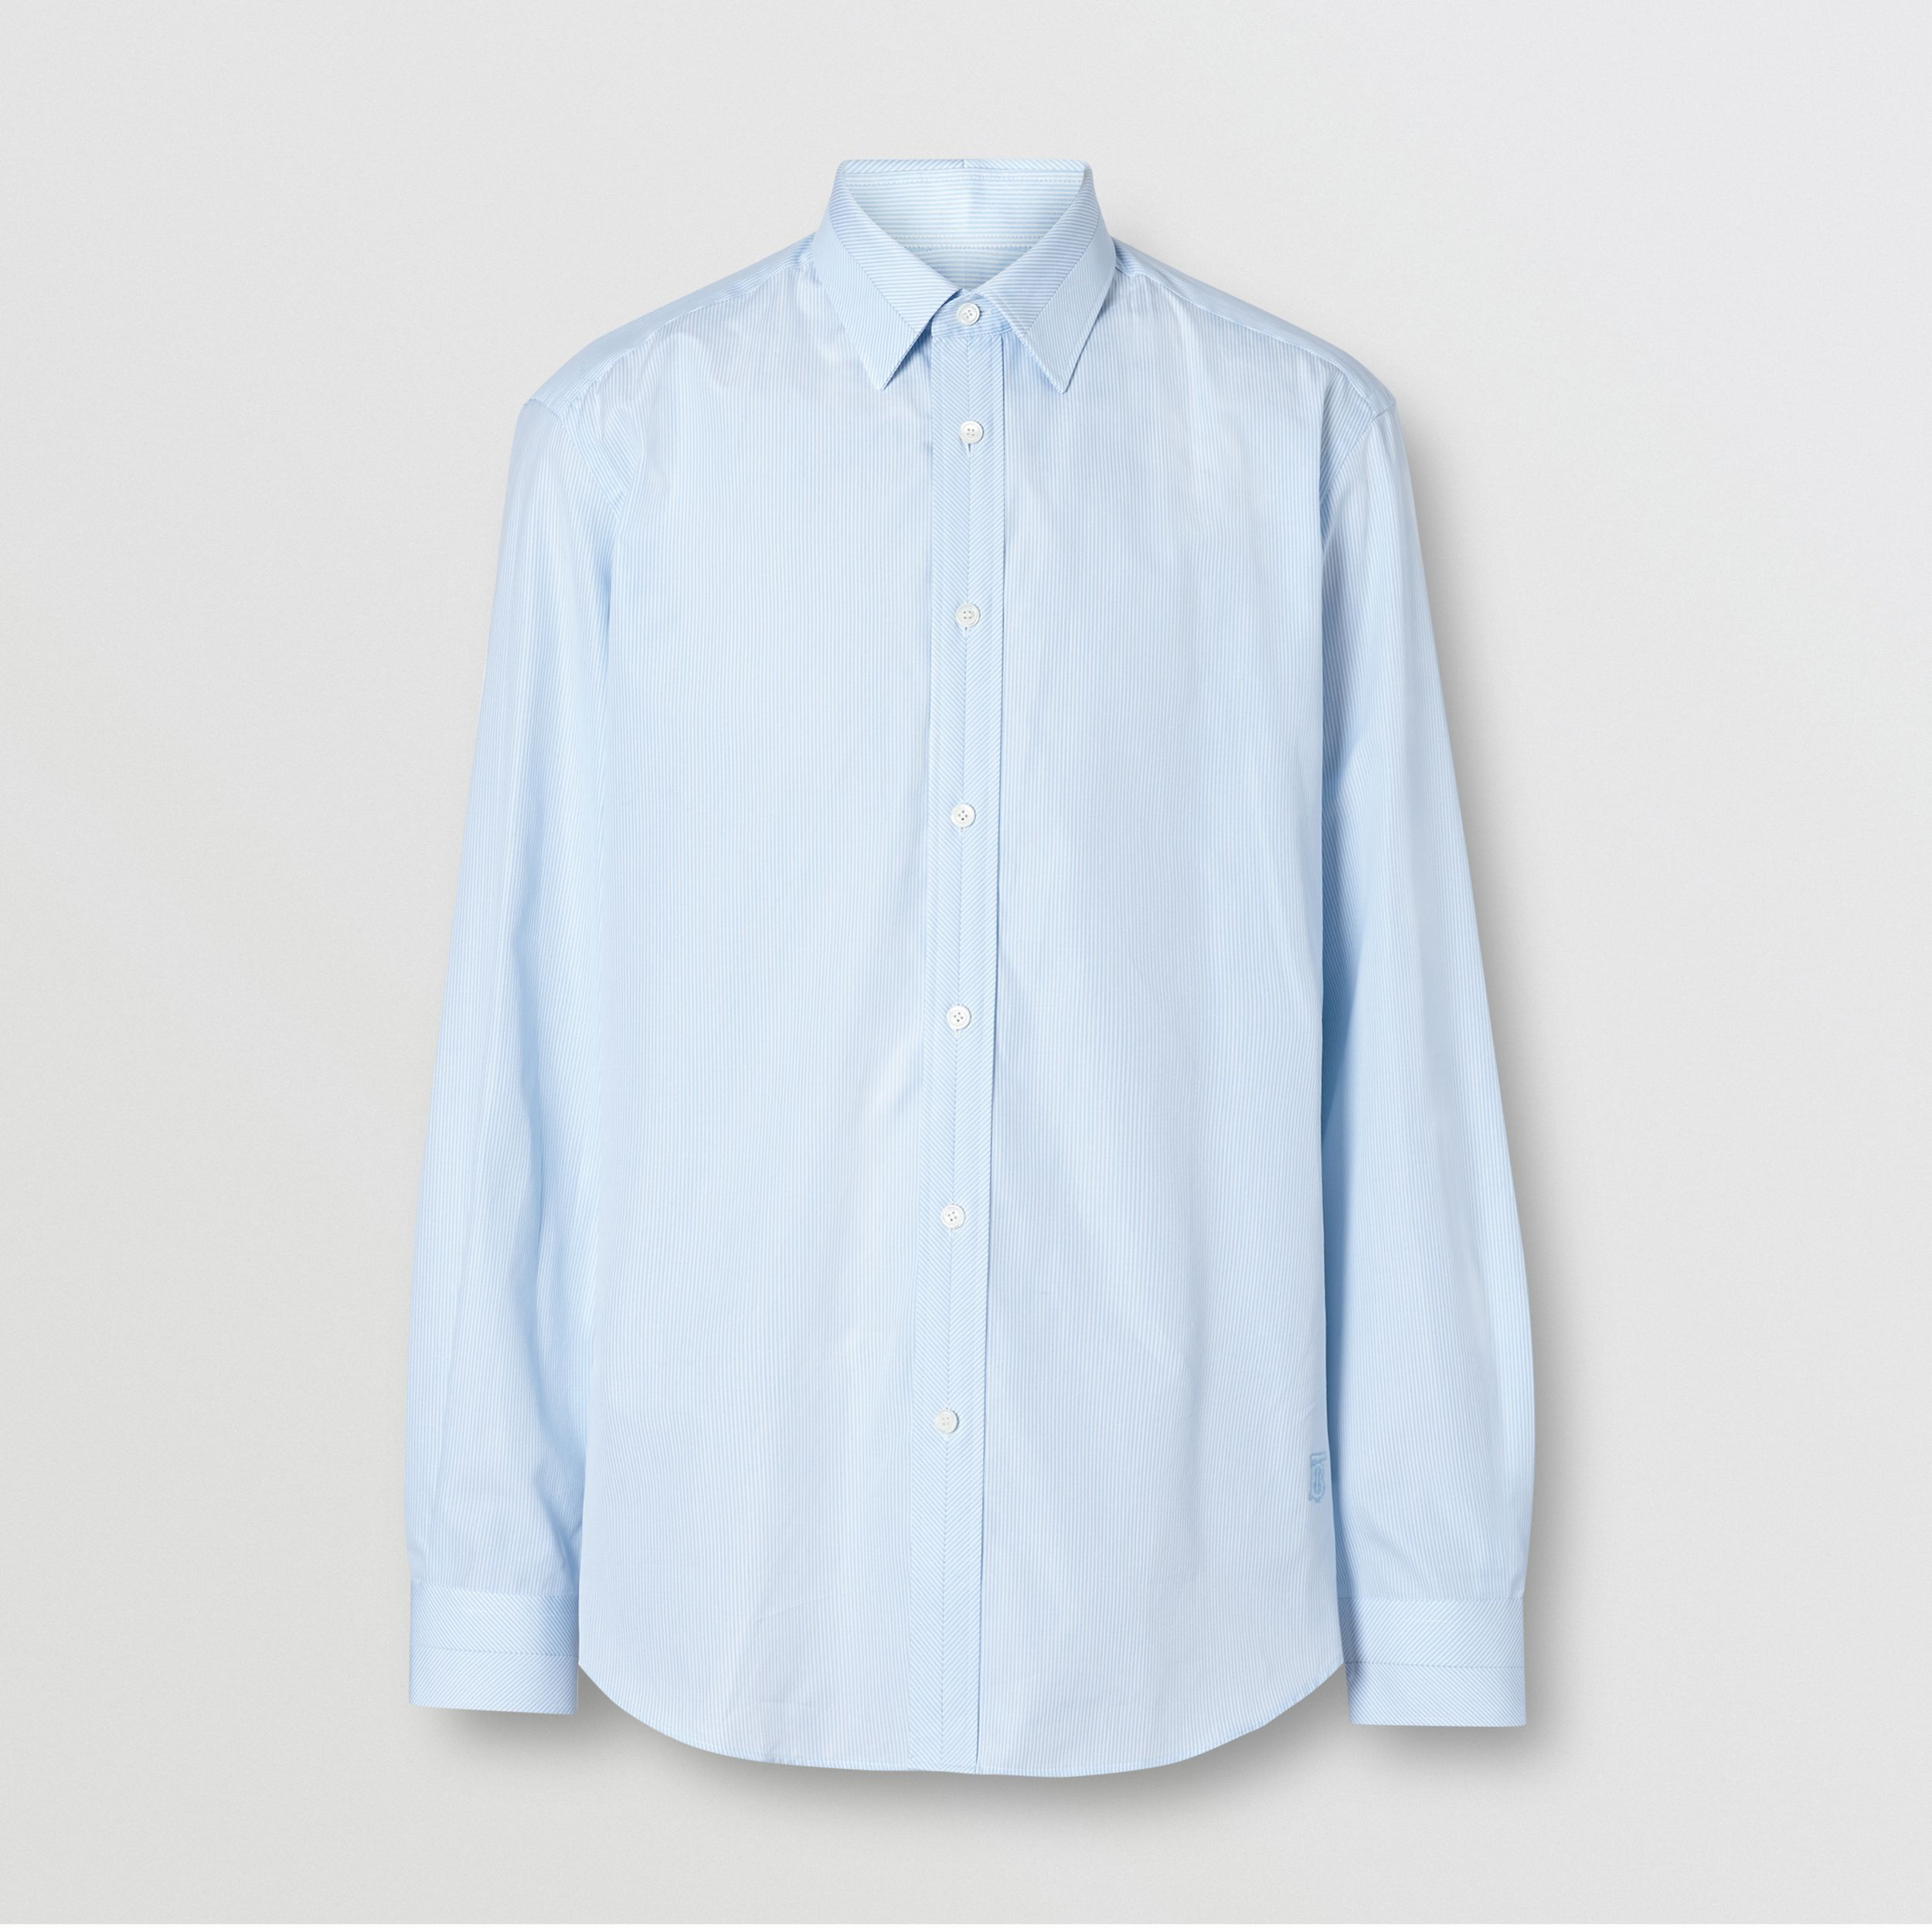 Classic Fit Striped Cotton Poplin Dress Shirt in Pale Blue | Burberry - 4